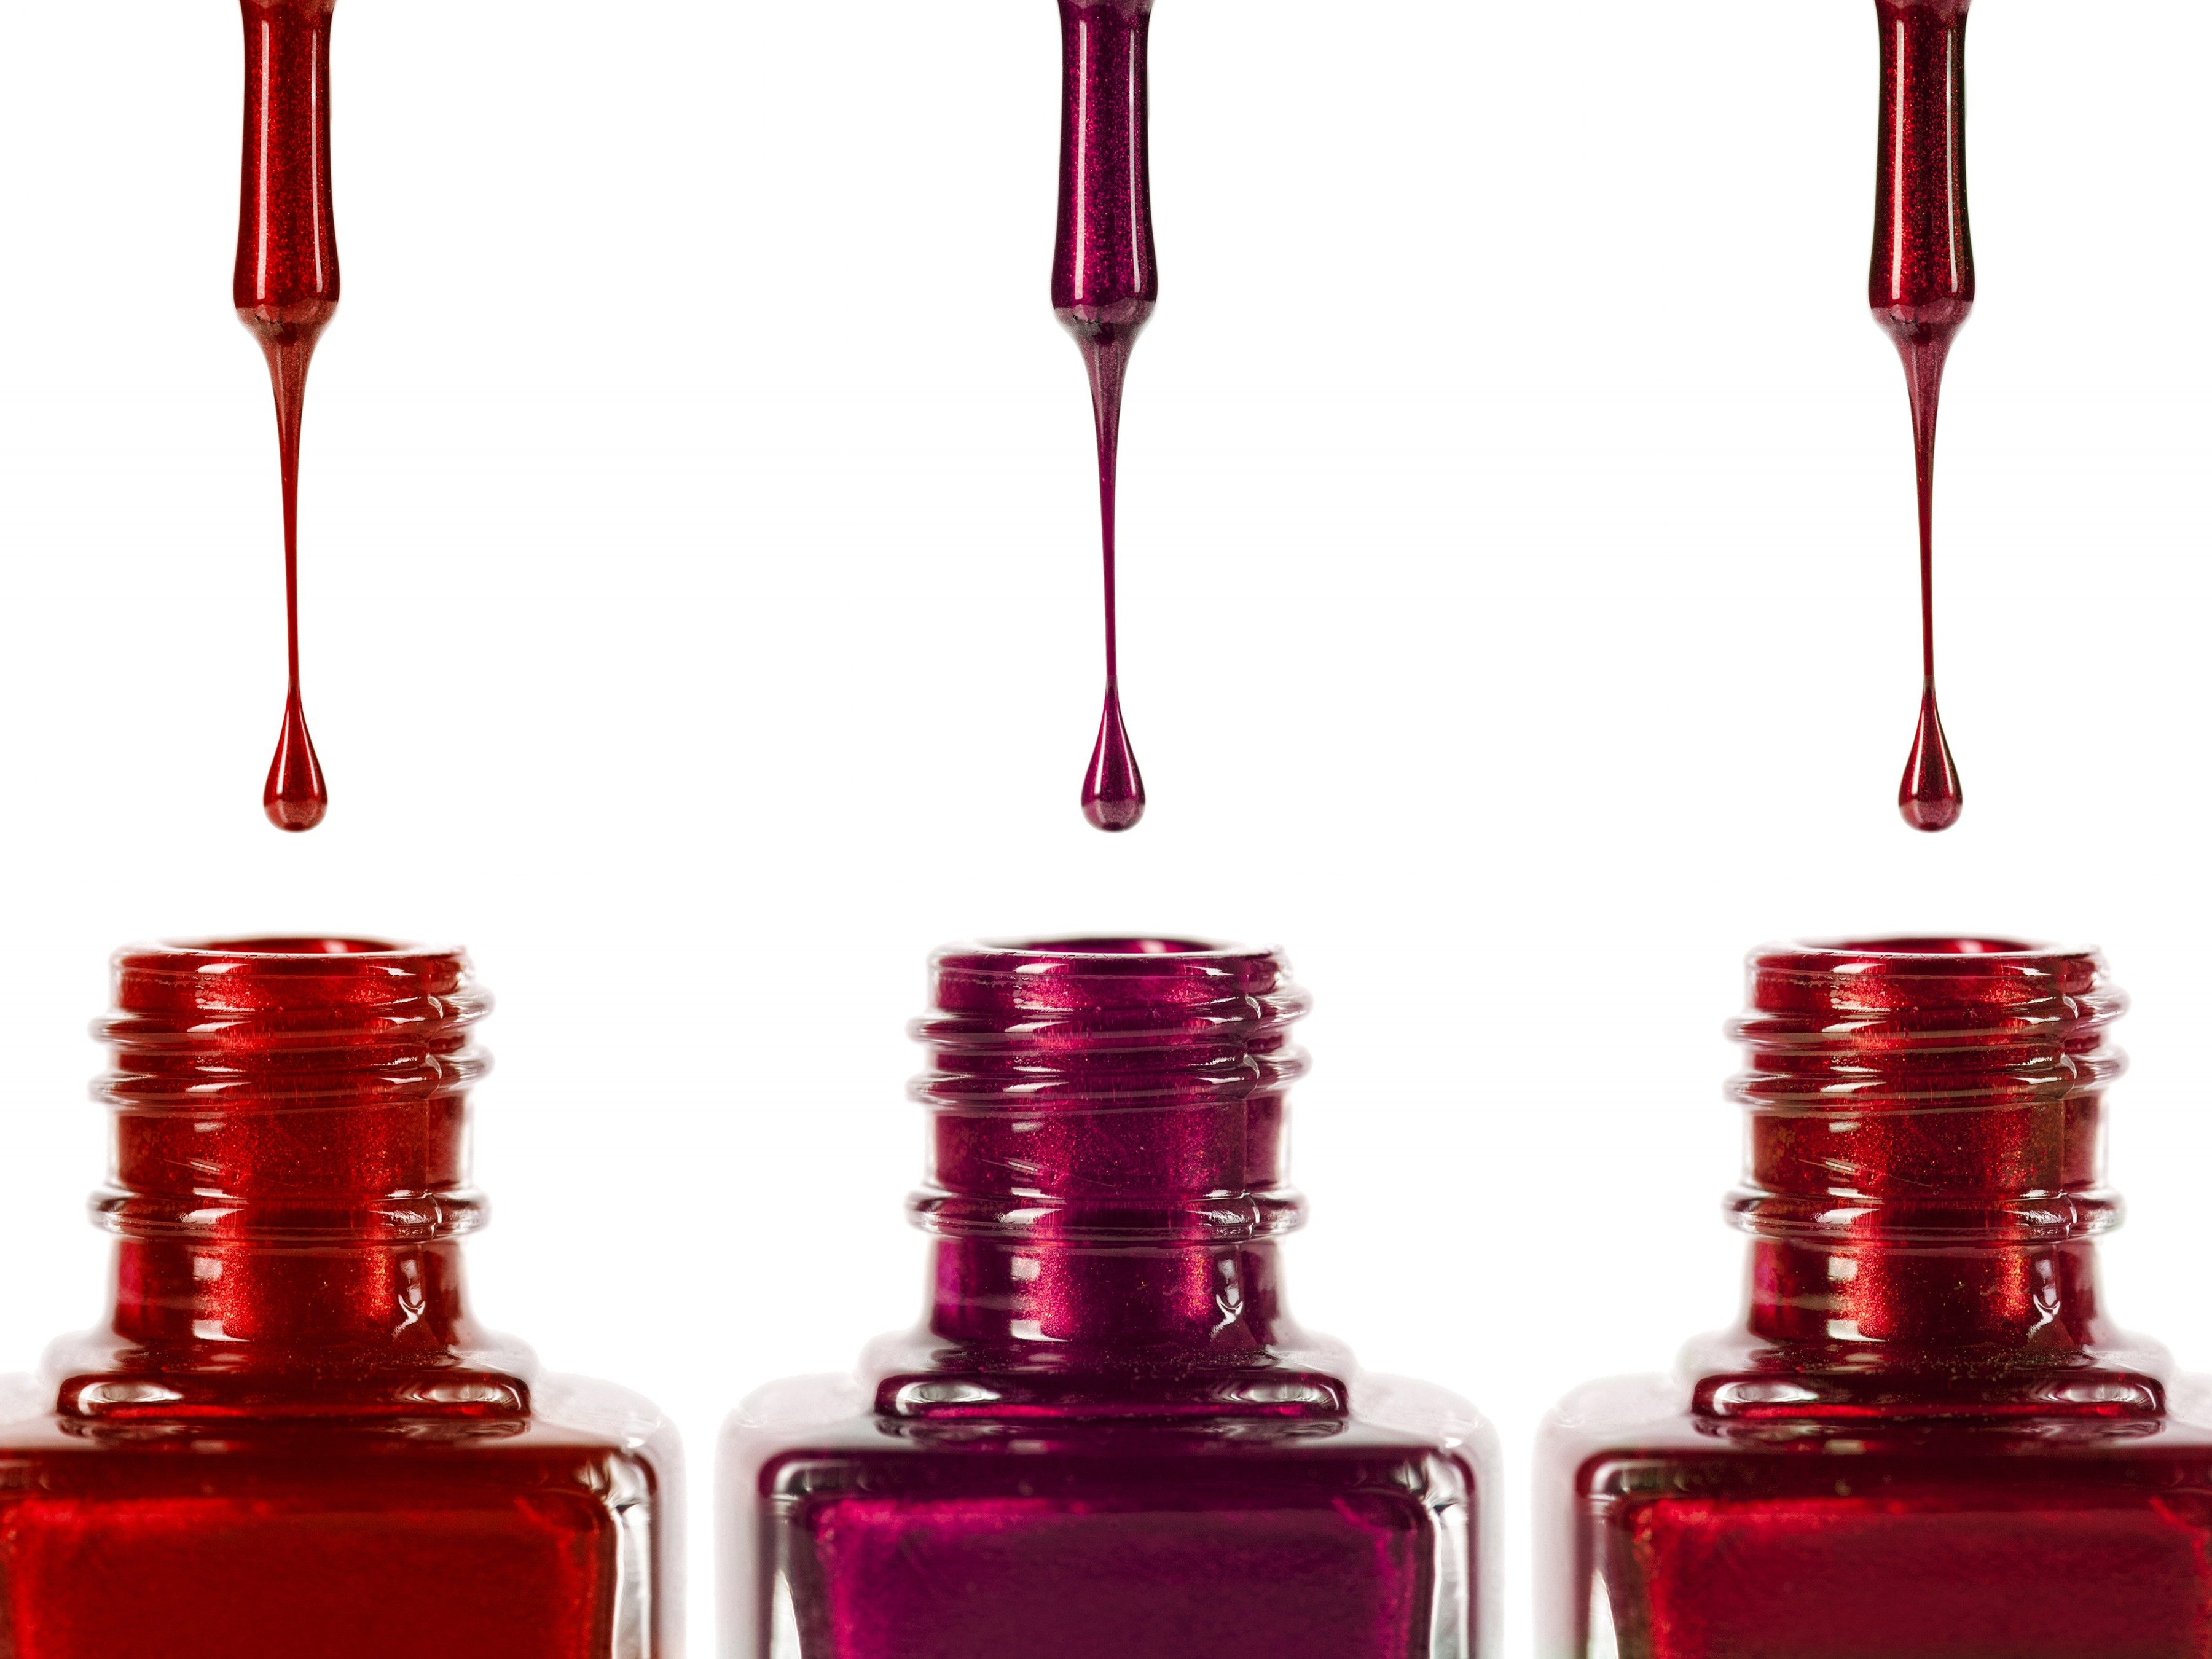 Nail Polish Tip #4: Apply Two Coats of Polish